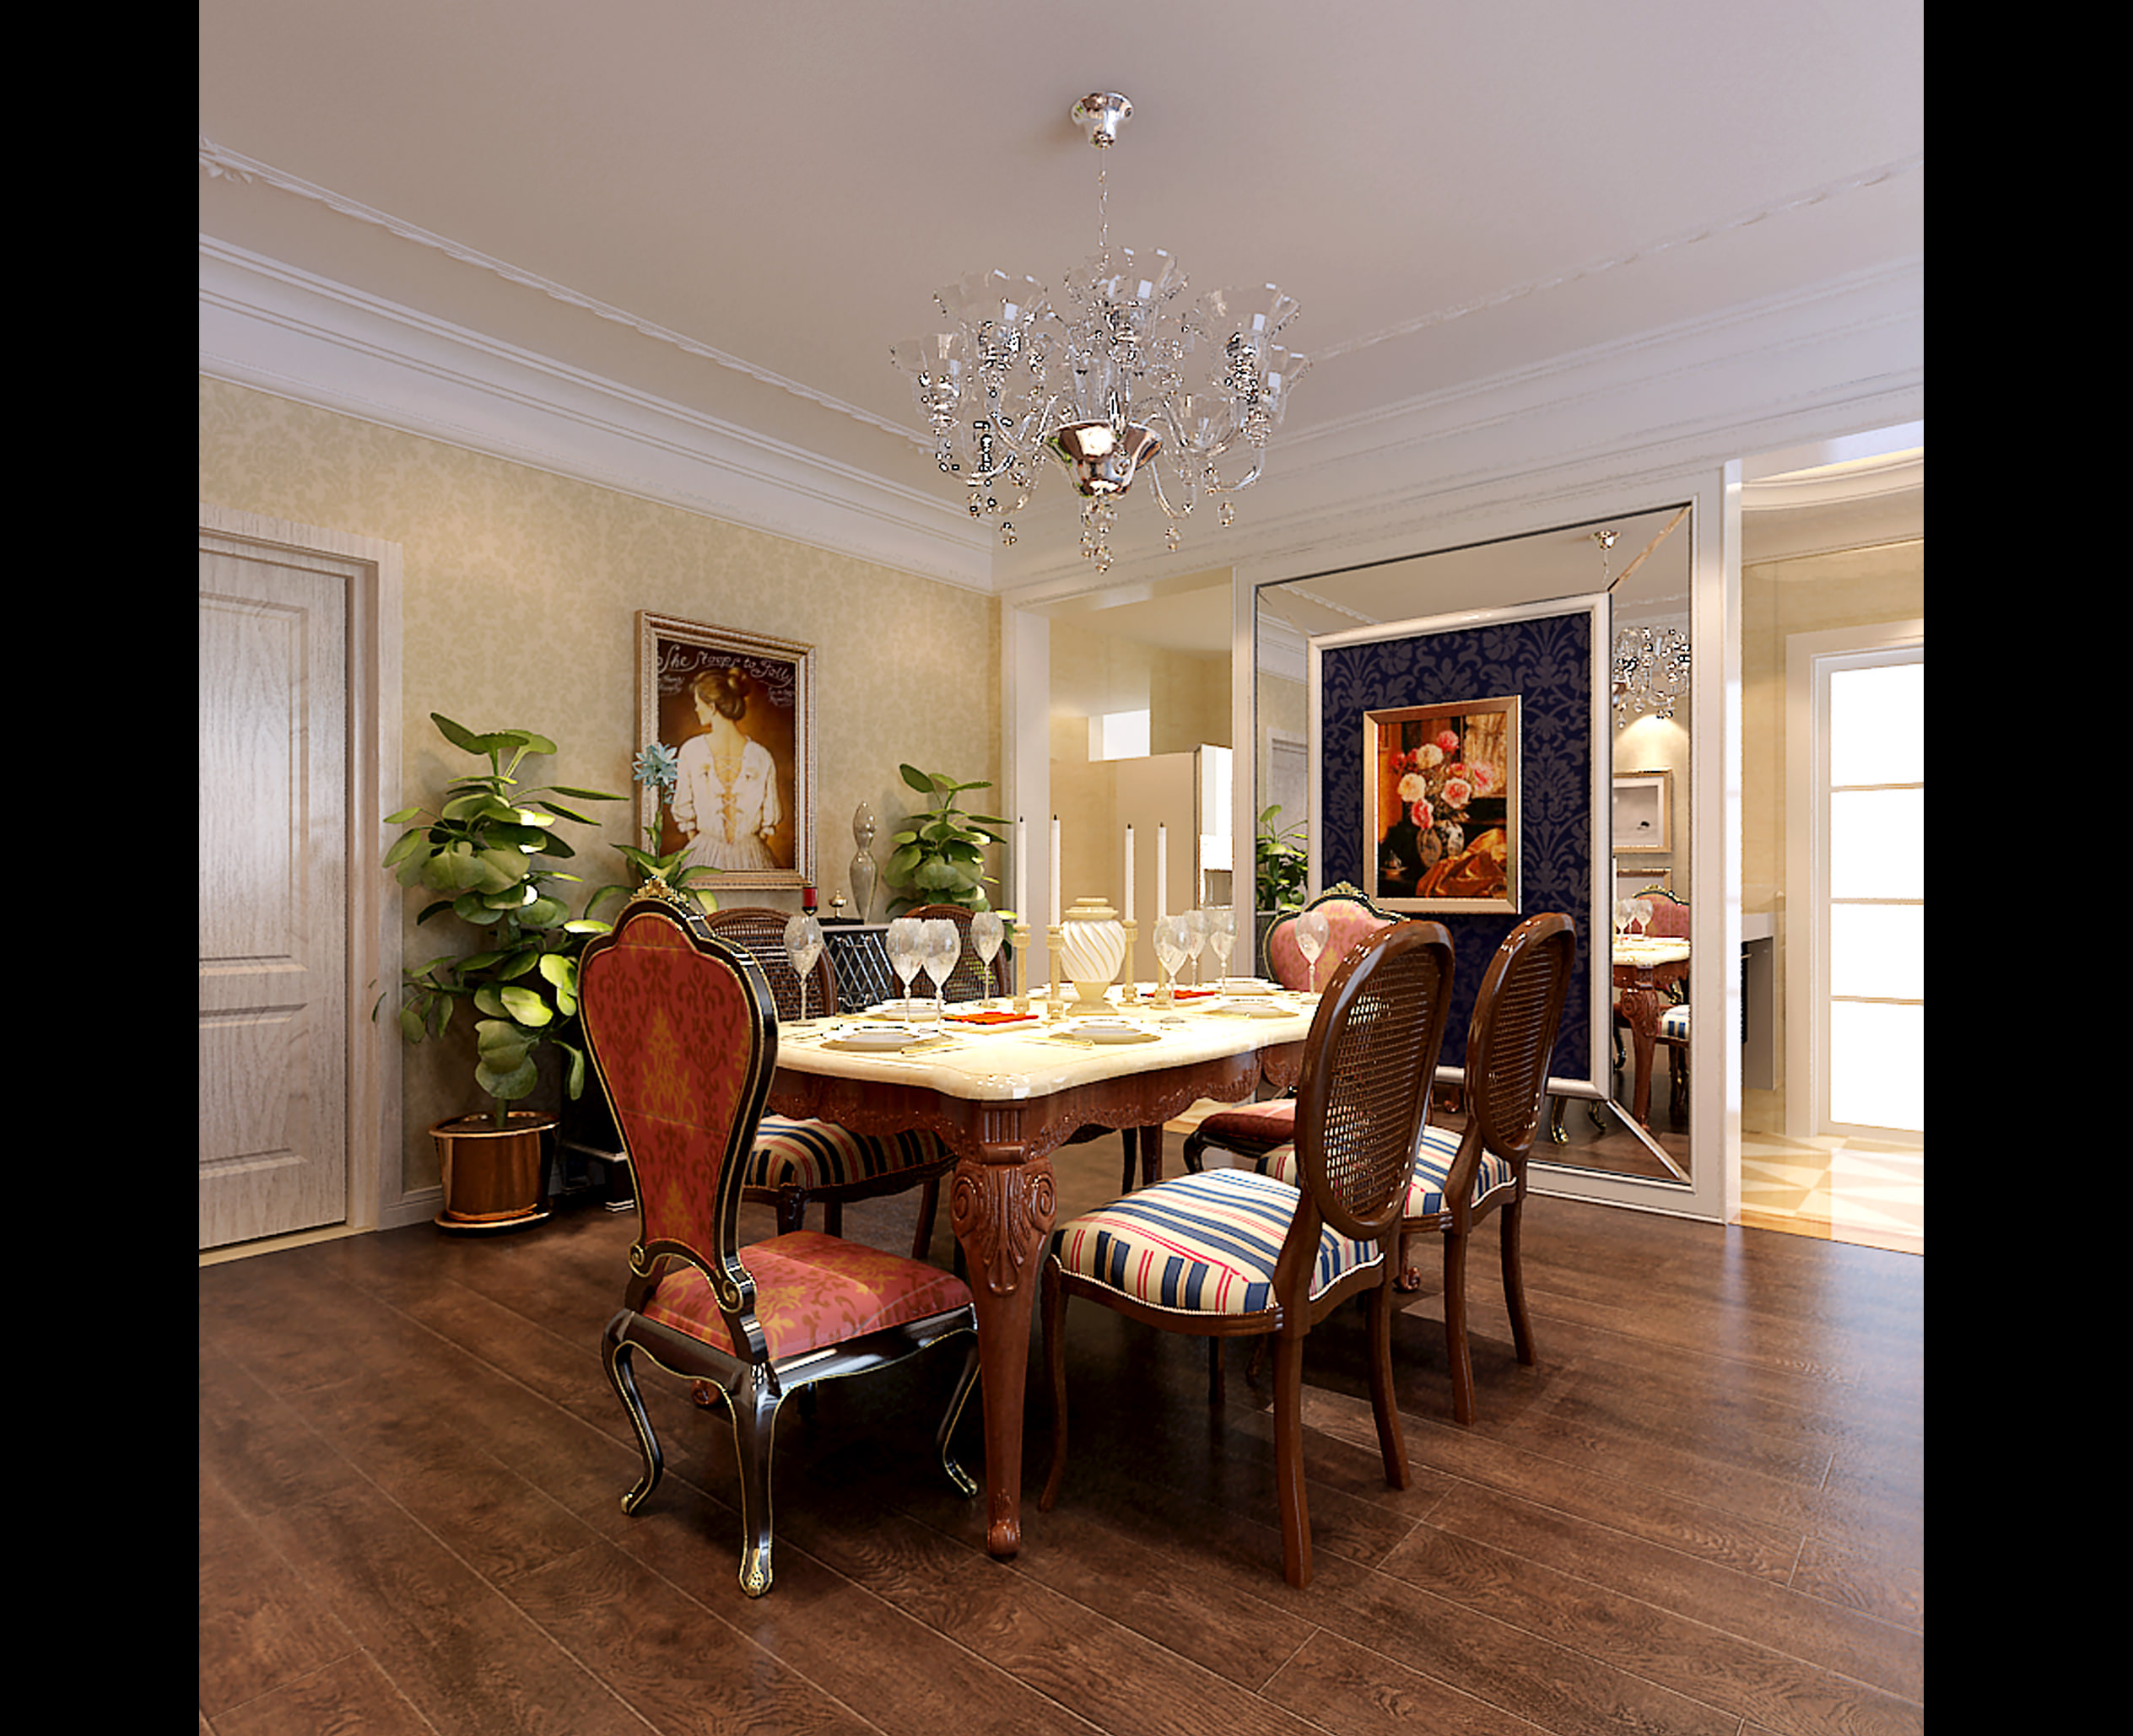 Exceptional ... Collection Luxurious Dining Room Collection 3d Model Max Tga 9 ...